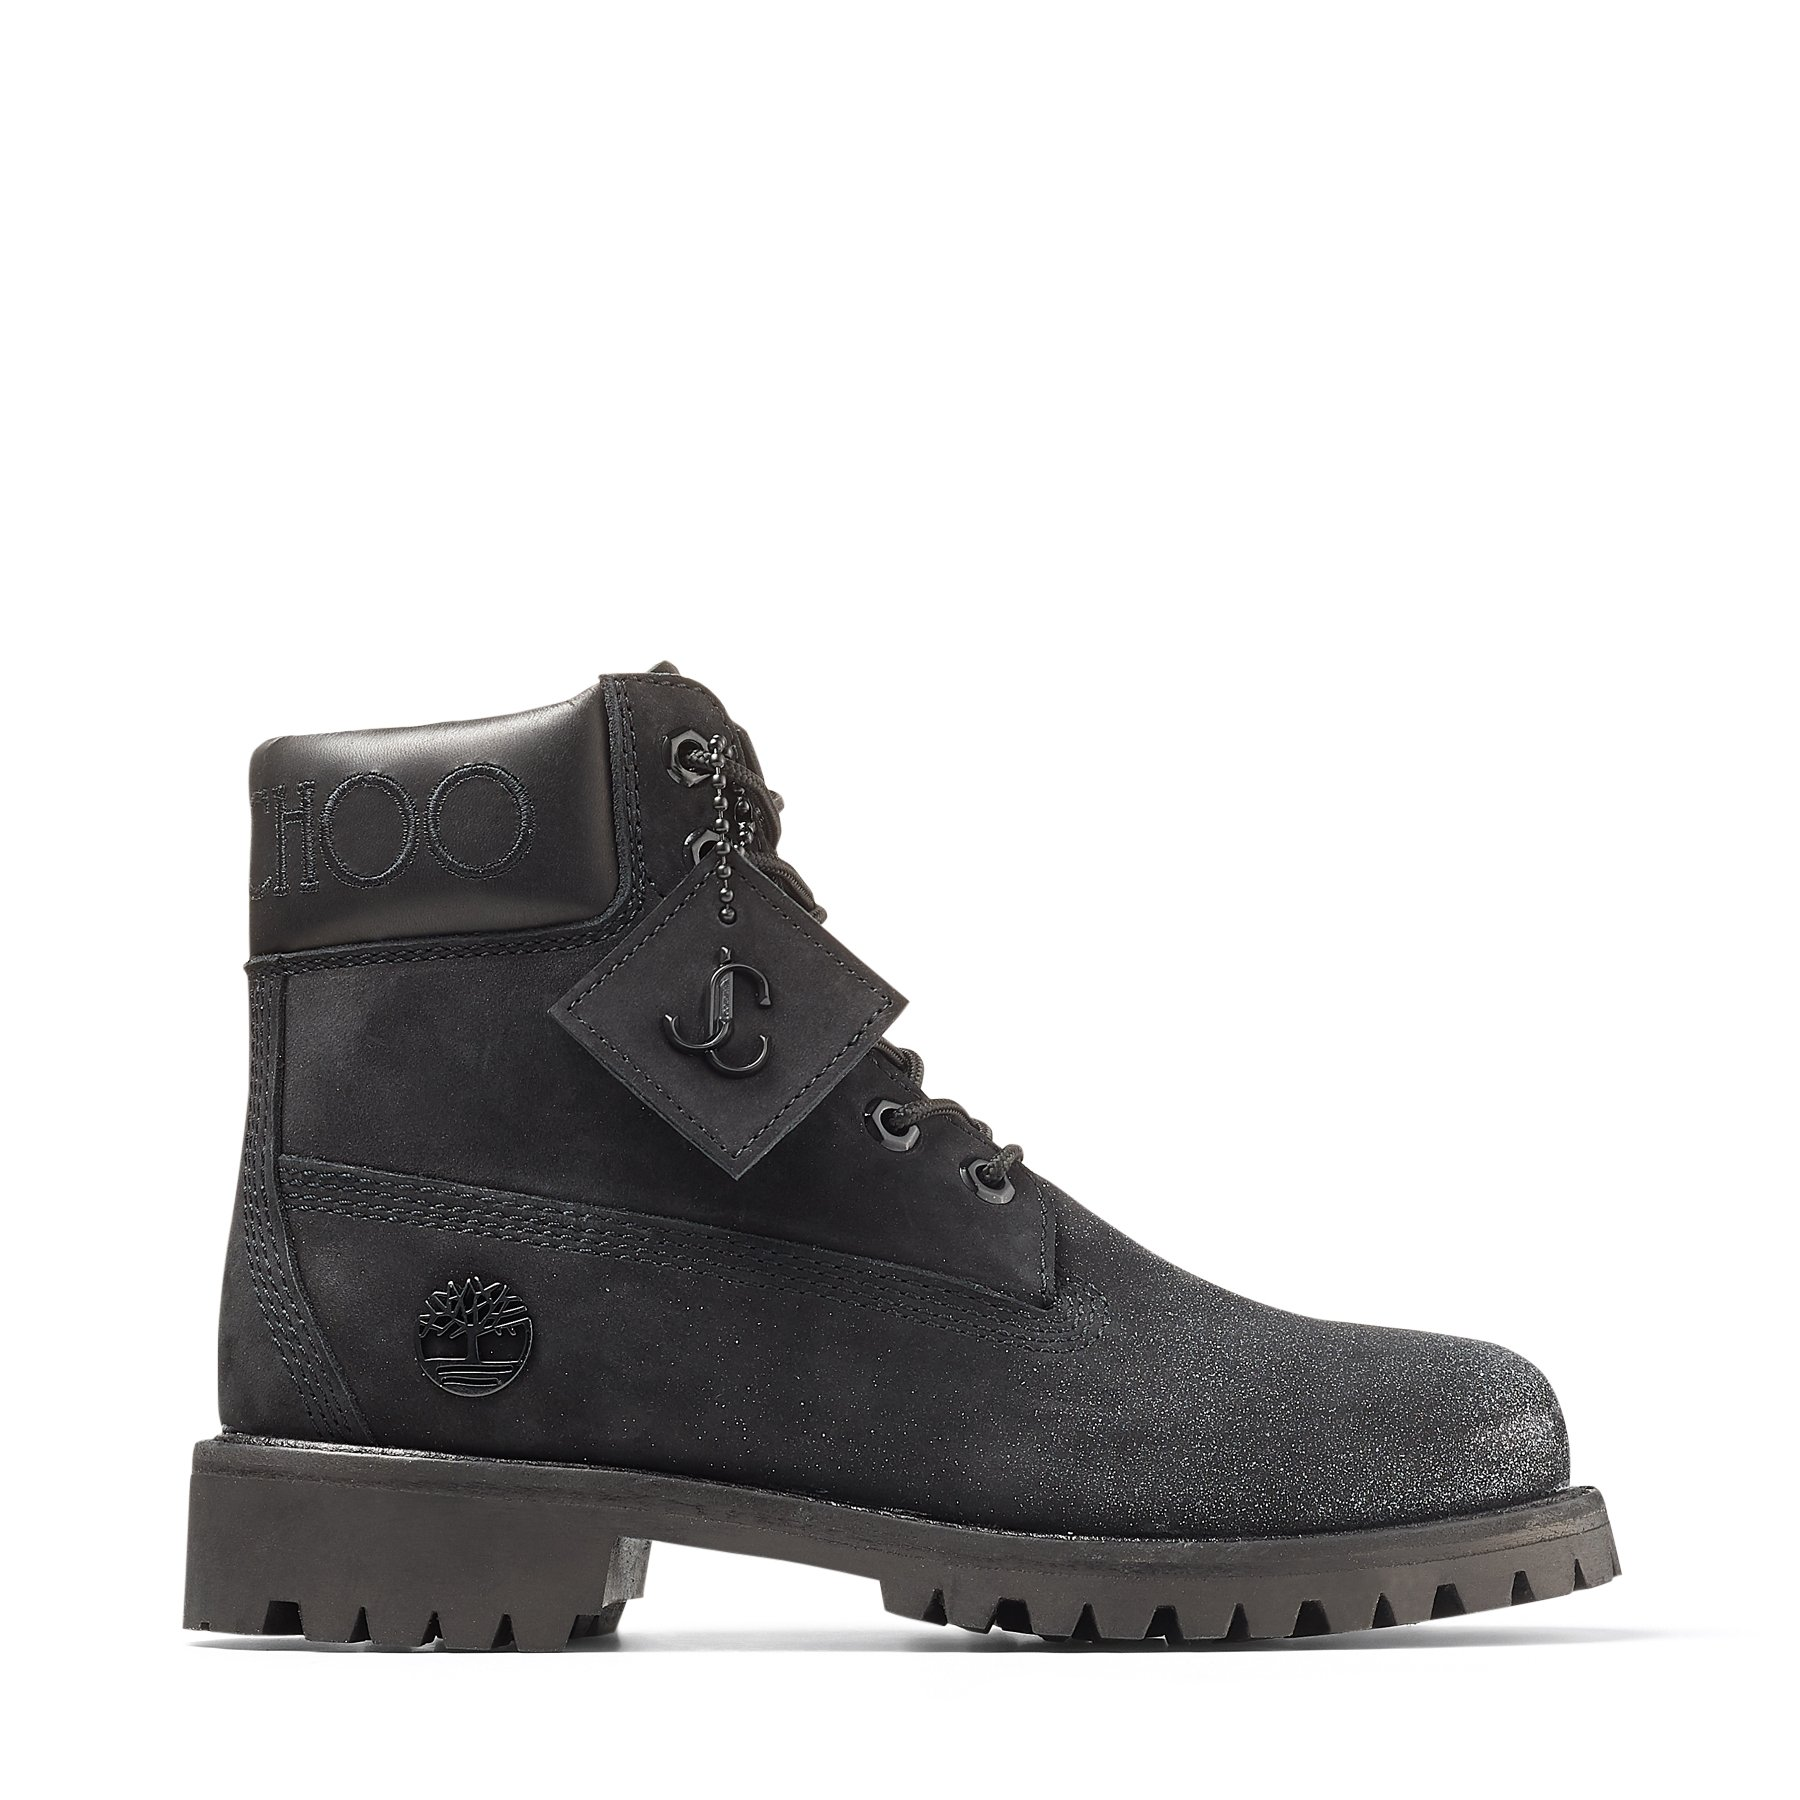 Black Nubuck Leather Boots with